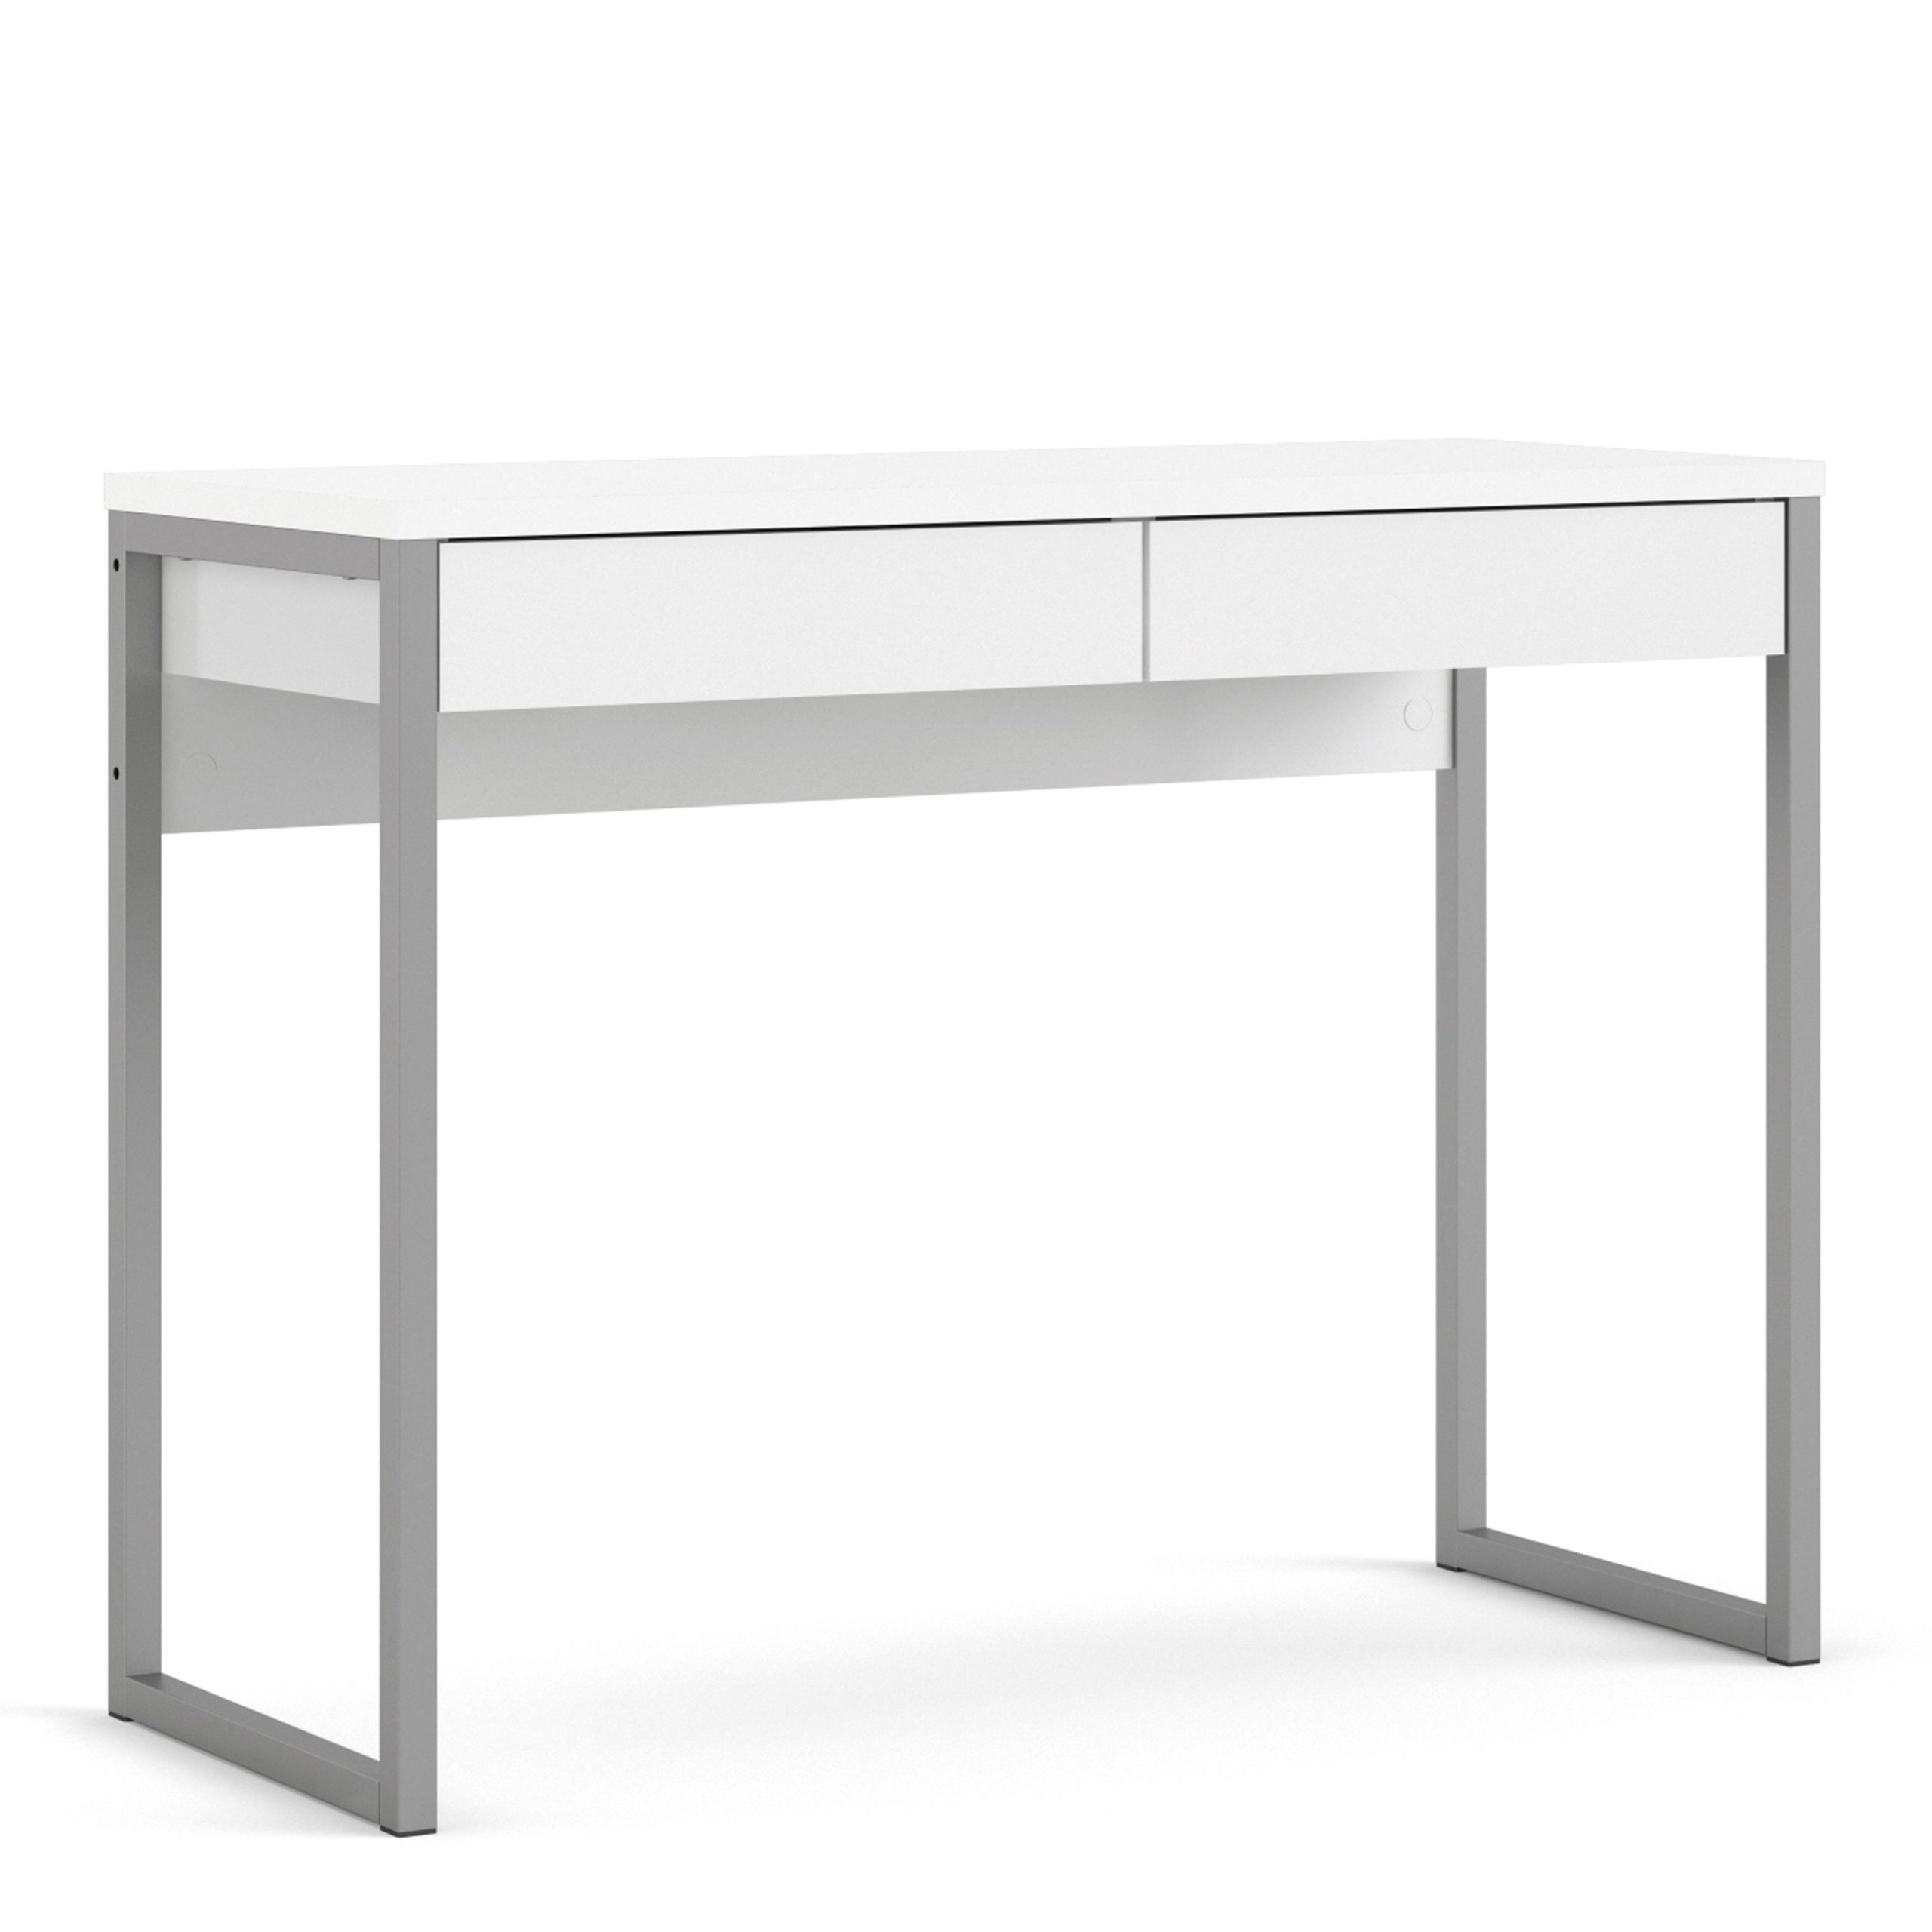 Fosy Desk 2 Drawers in White High Gloss